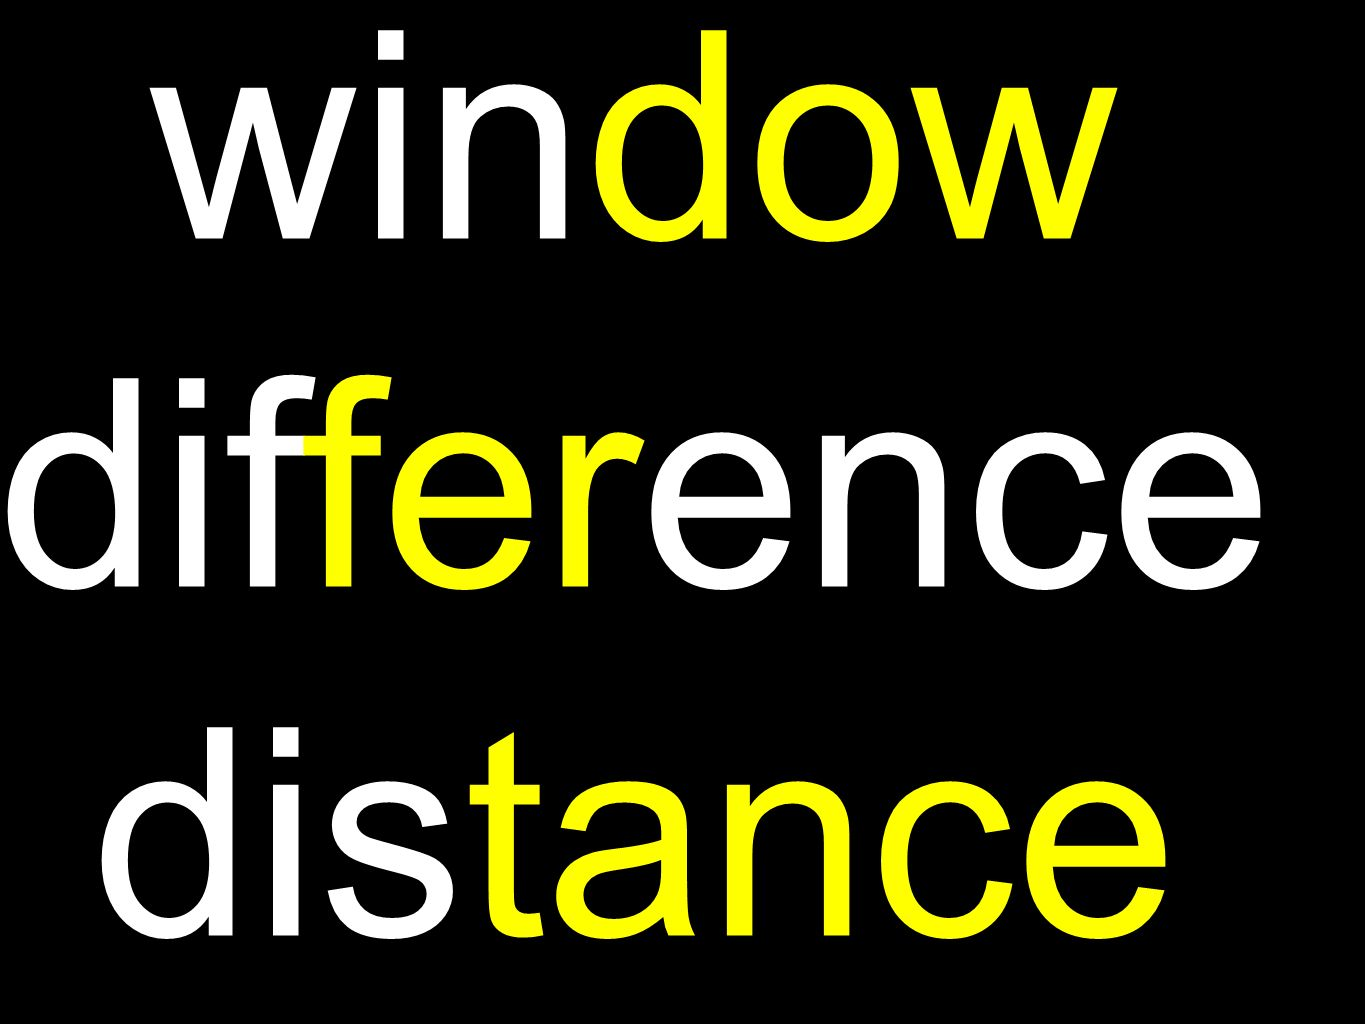 window difference distance